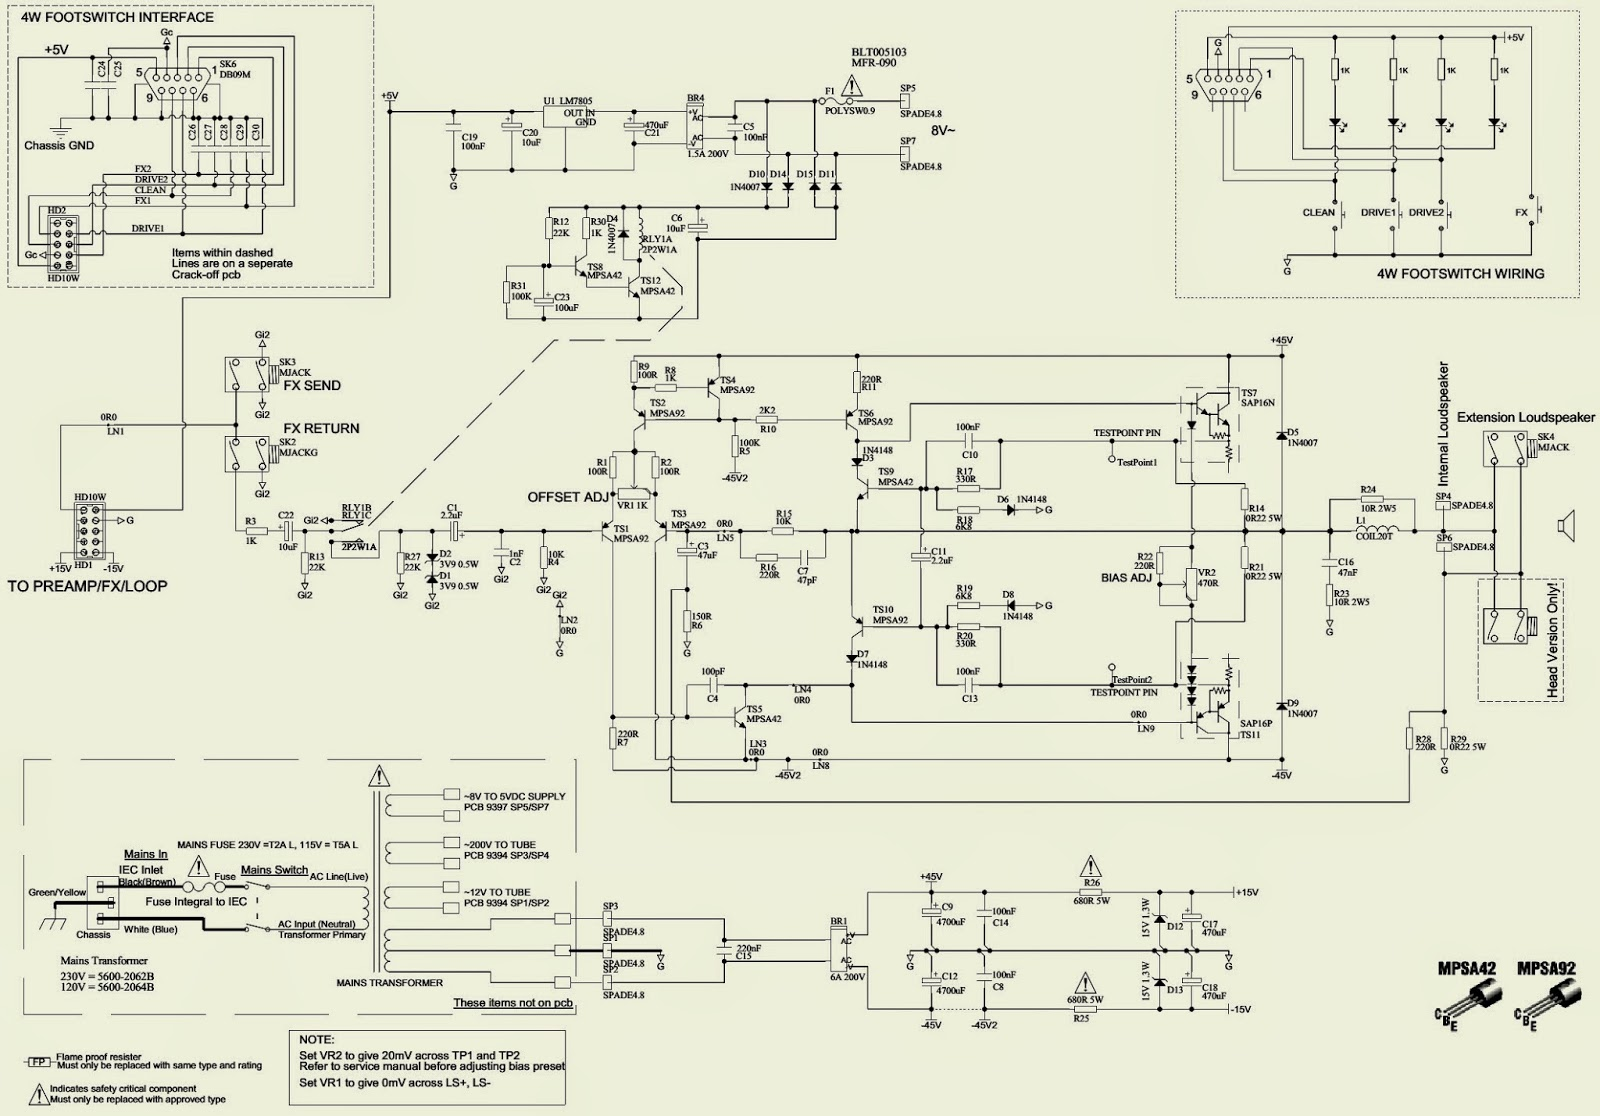 Fantastic guitar footswitch wiring diagram photos the best awesome guitar footswitch wiring diagram images the best asfbconference2016 Image collections